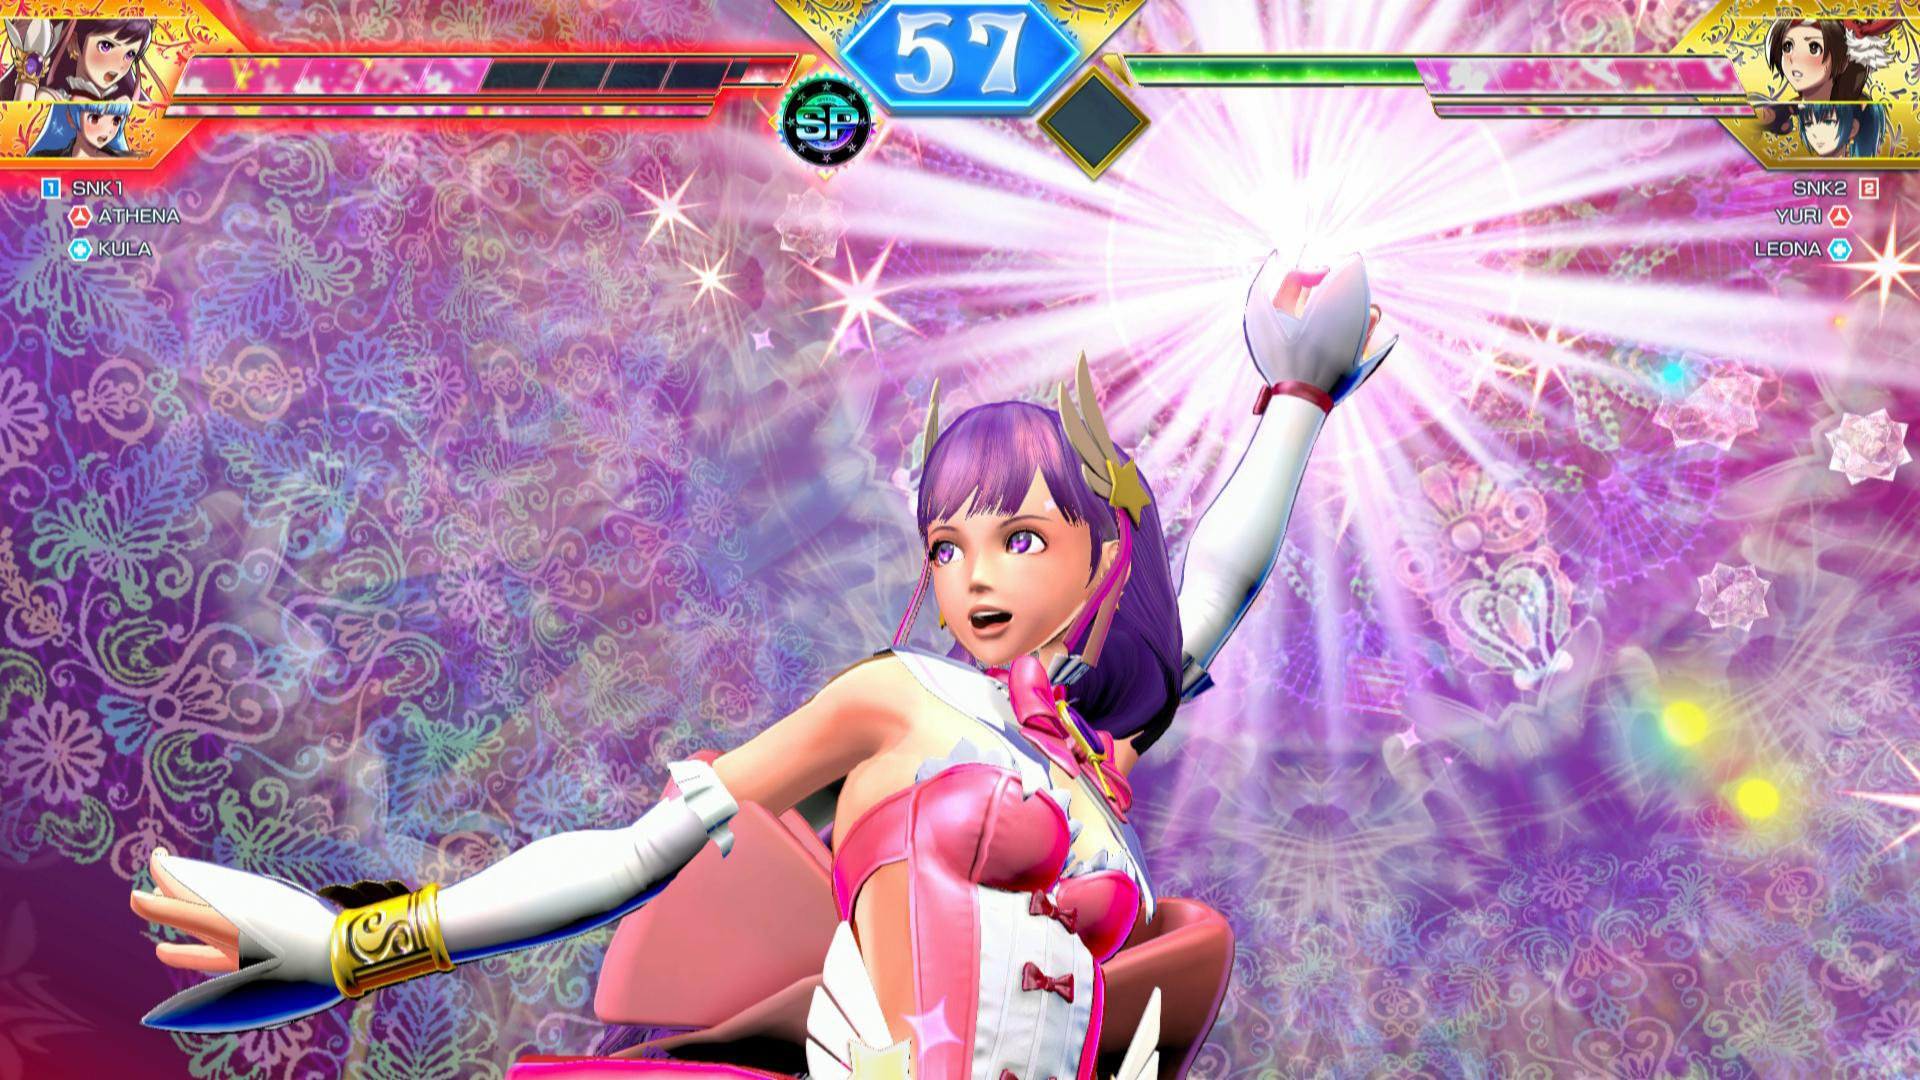 2D, Action, anime, arcade, Cute, Fighter, Fighting, Nintendo Switch Review, NIS America, Rating 8/10, SNK, SNK Corporation, SNK HEROINES Tag Team Frenzy, SNK HEROINES Tag Team Frenzy Review, SNK Playmore, Switch Review